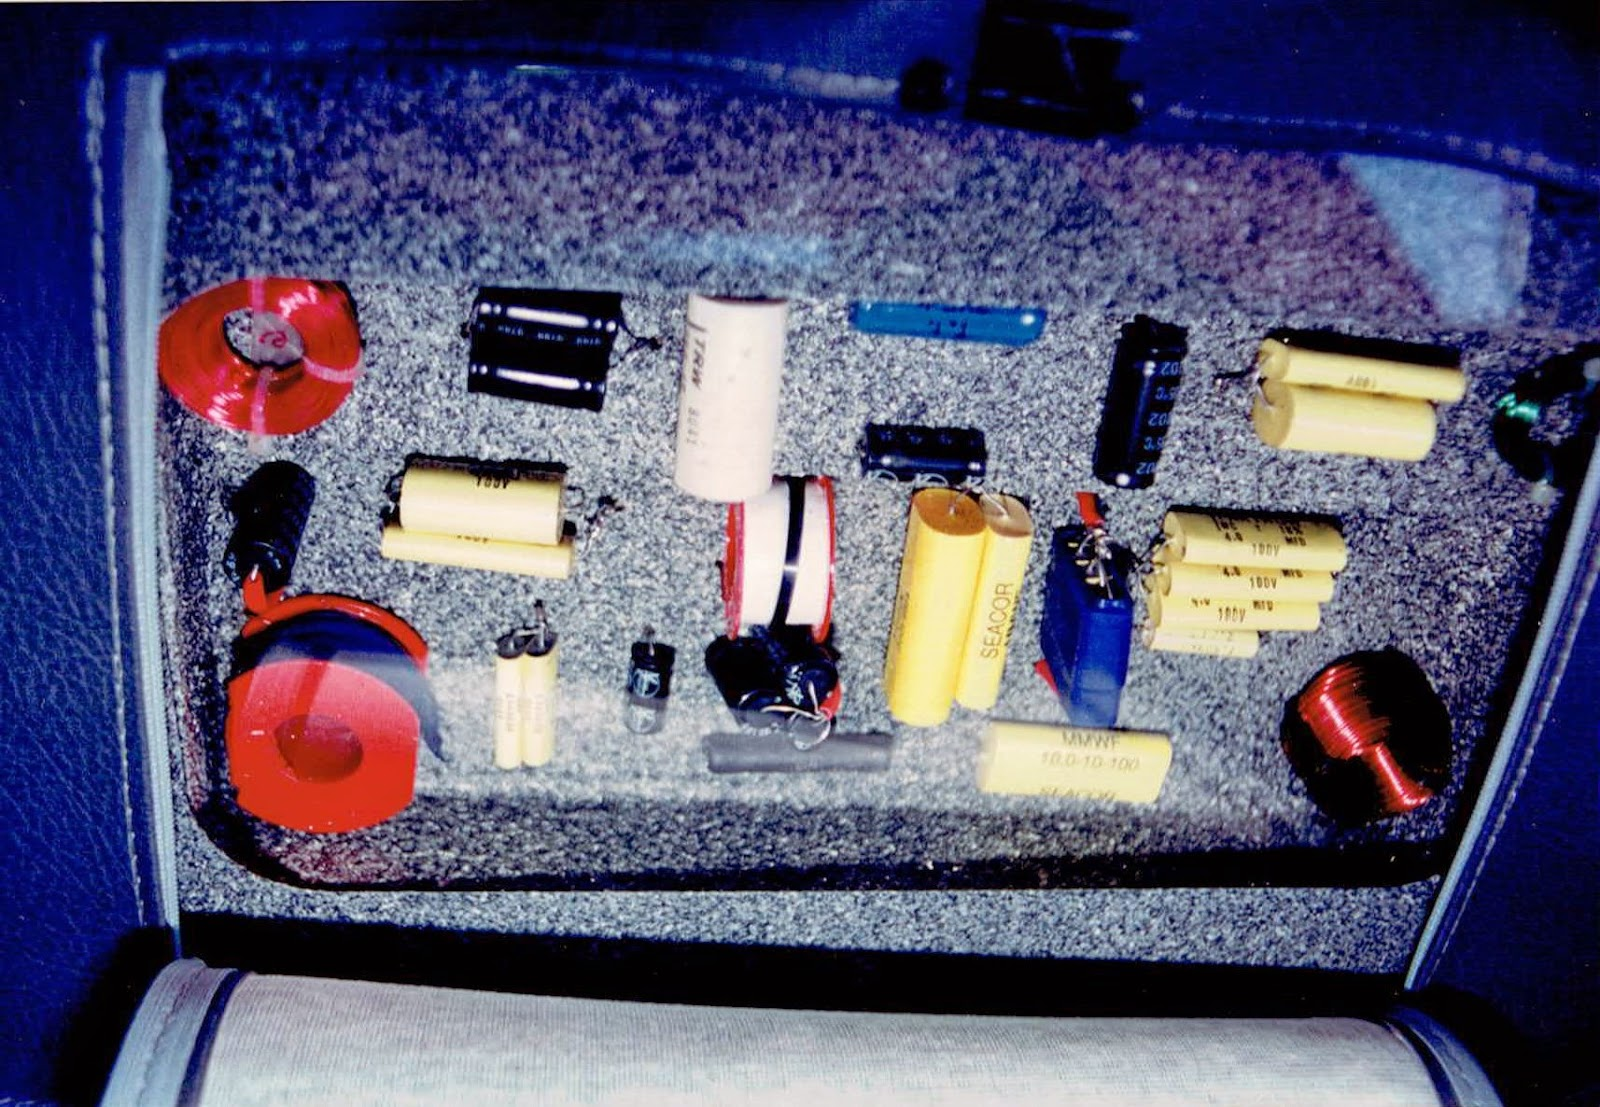 Photo of the passive crossovers inside the front seats in Alberto A Lopez's 1991 Red NIssan Sentra